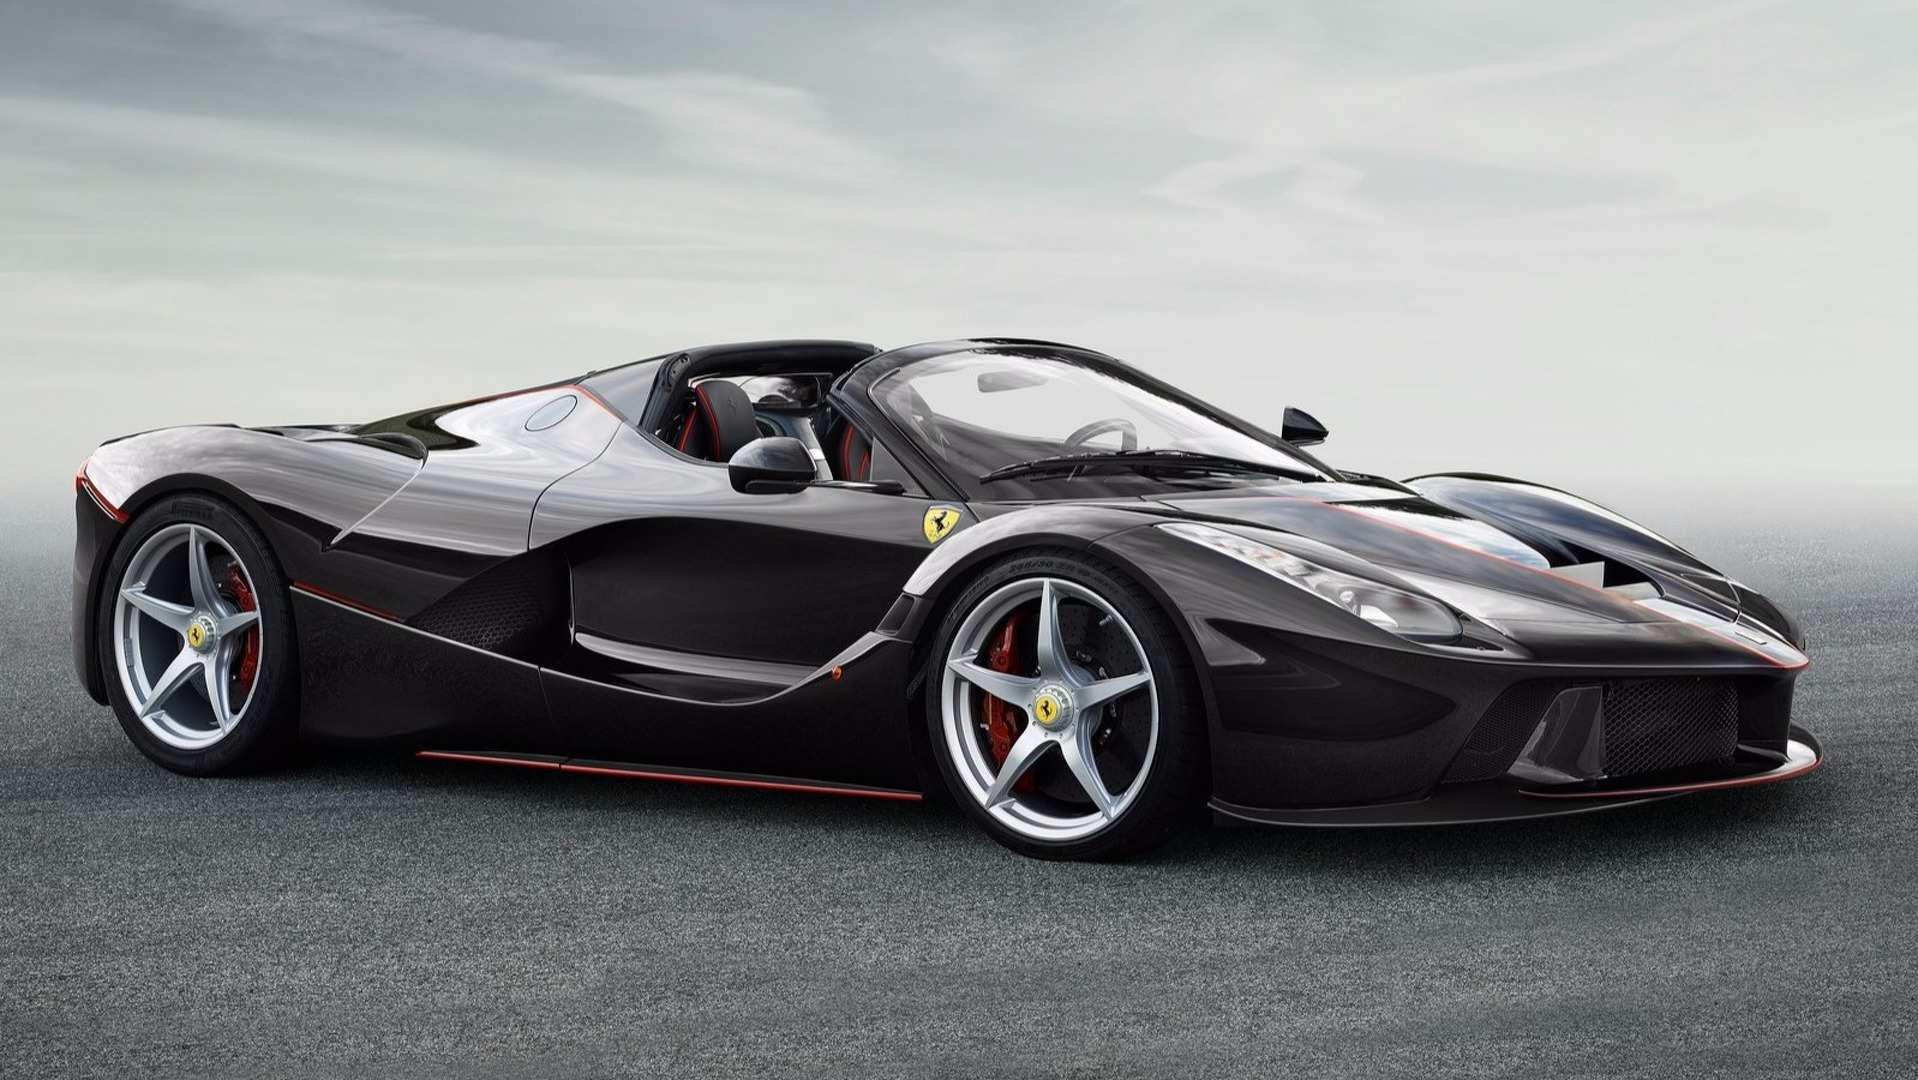 89 Concept of 2020 Ferrari Cars Interior by 2020 Ferrari Cars